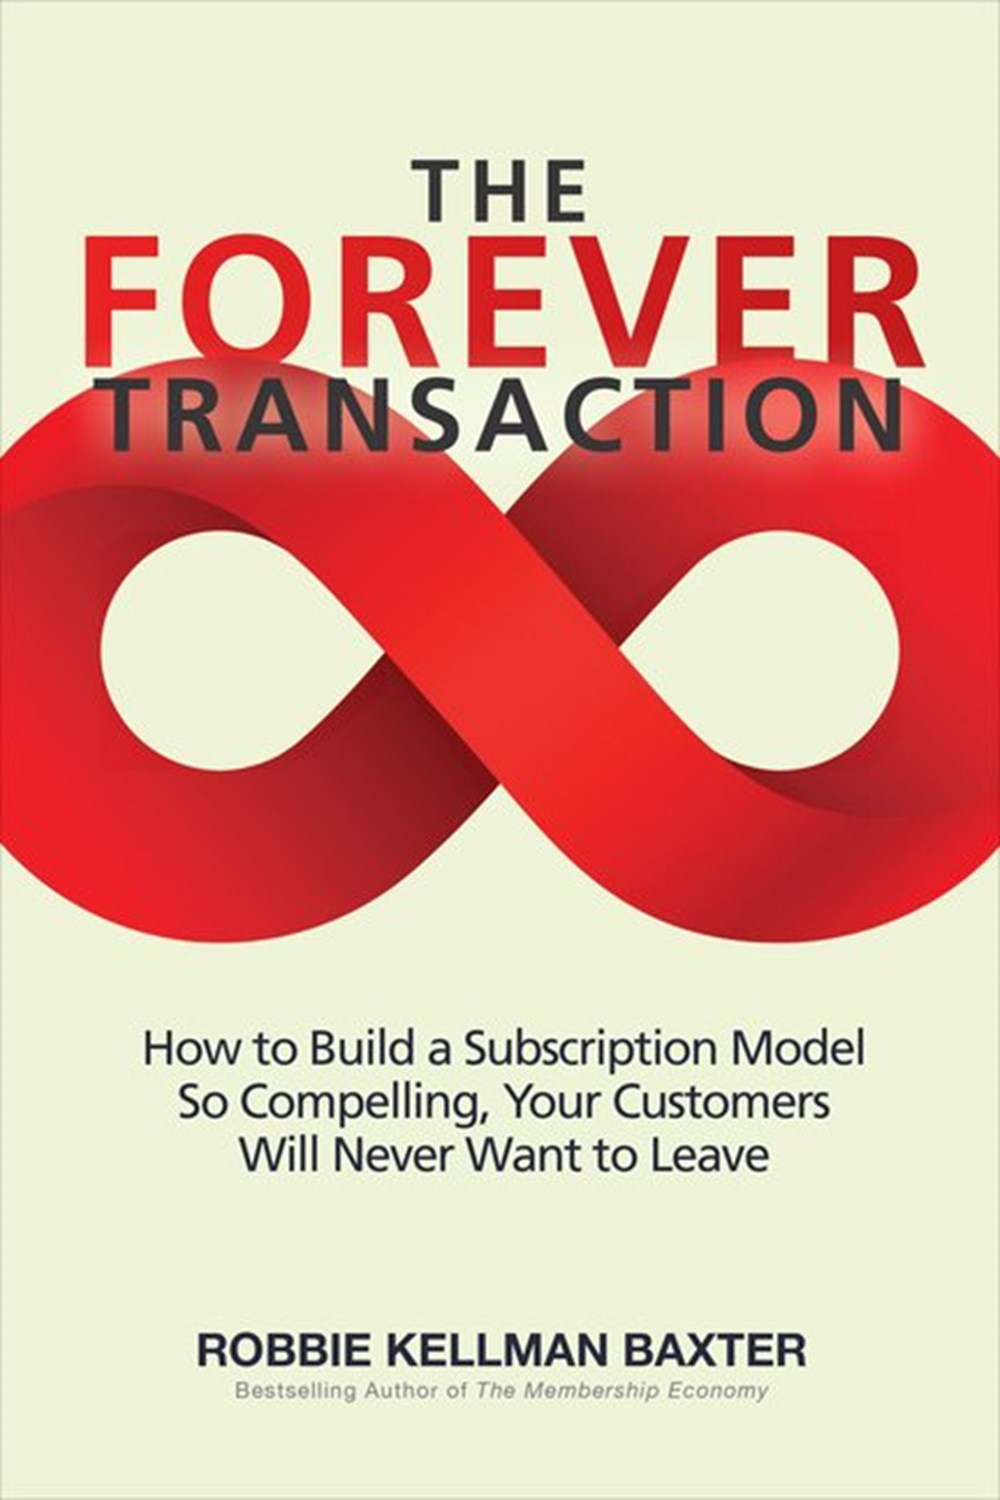 Forever Transaction How to Build a Subscription Model So Compelling, Your Customers Will Never Want